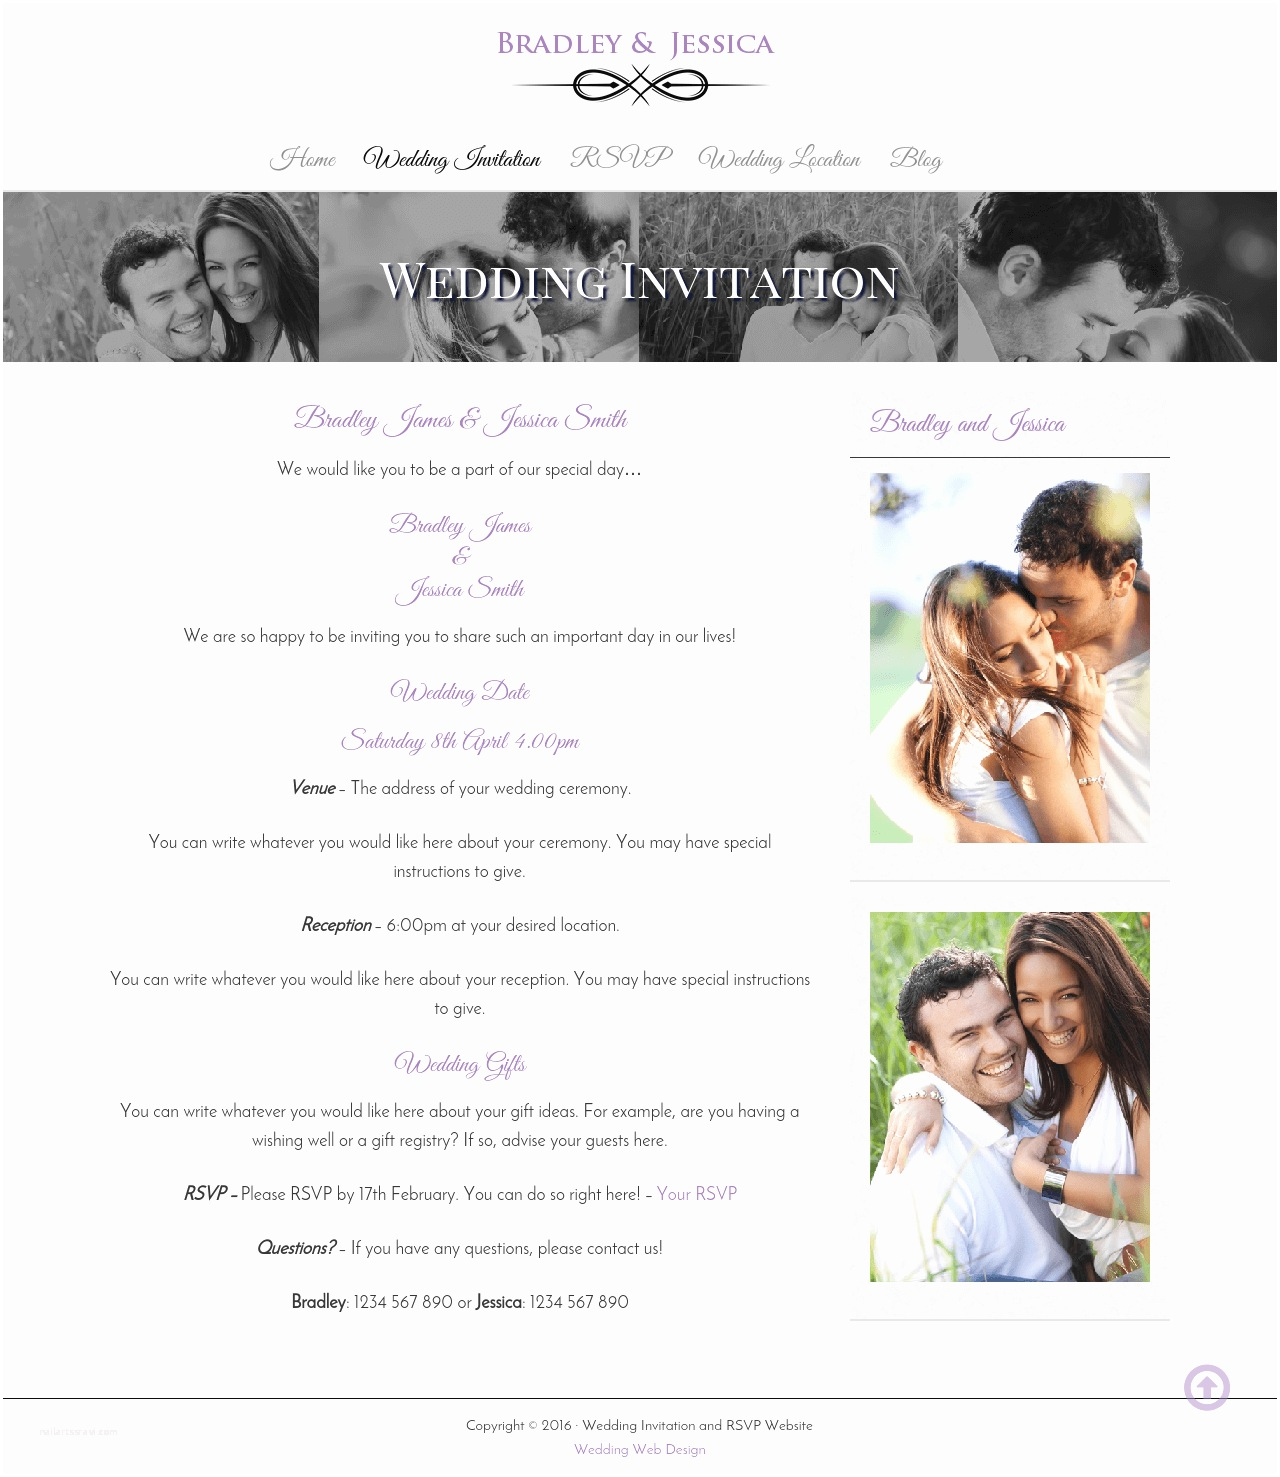 Best Wedding Invitation Websites Wedding Invitation and Wedding Gallery Websites